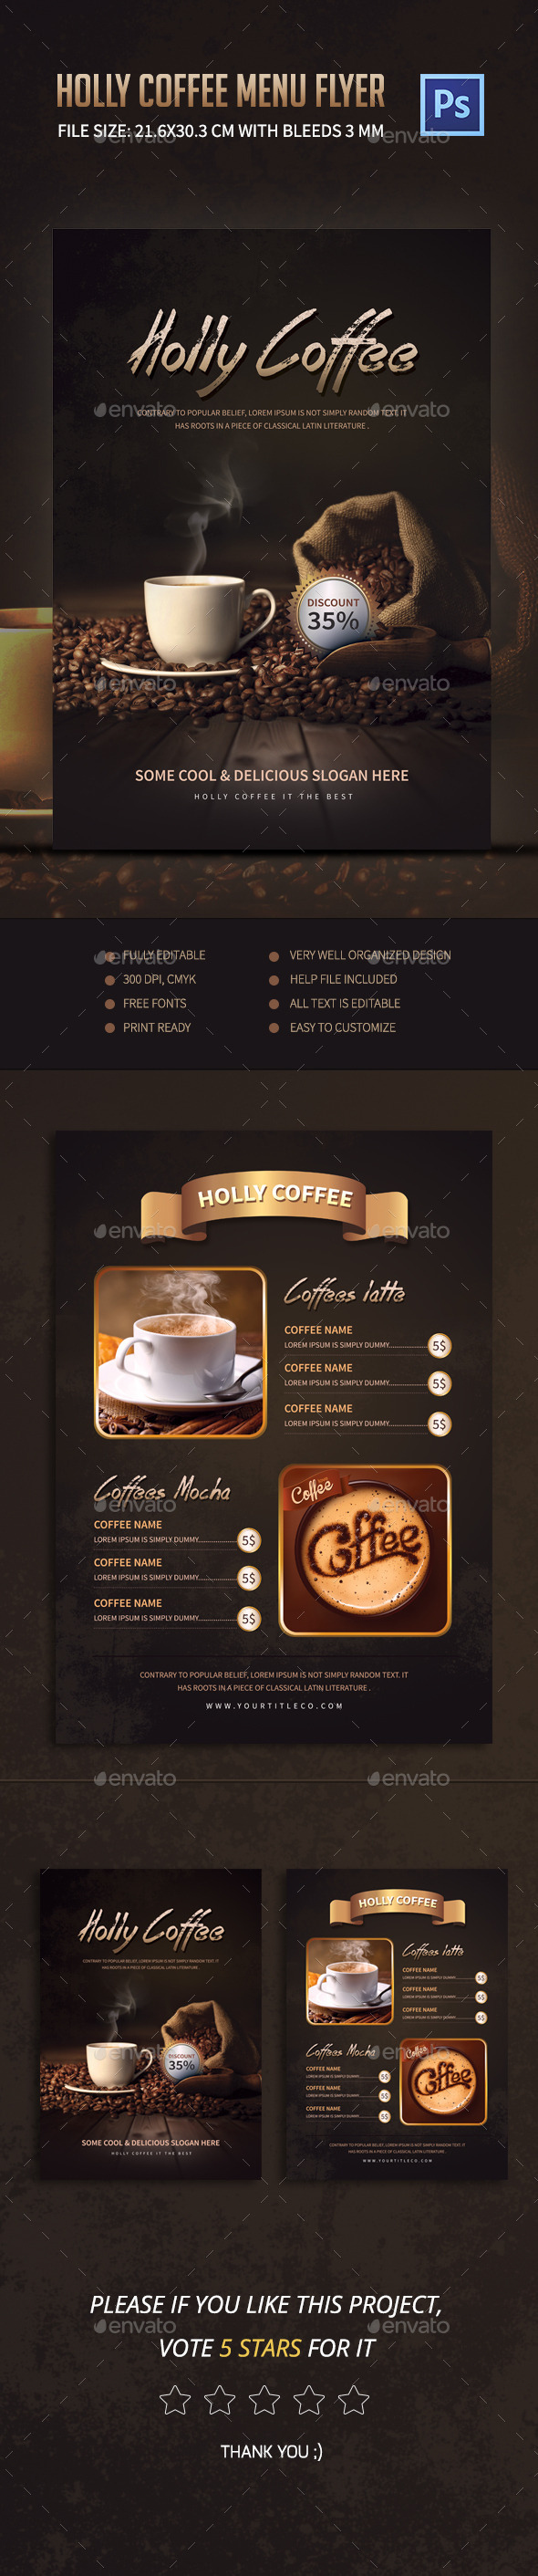 Holly Coffee Menu Flyer - Food Menus Print Templates